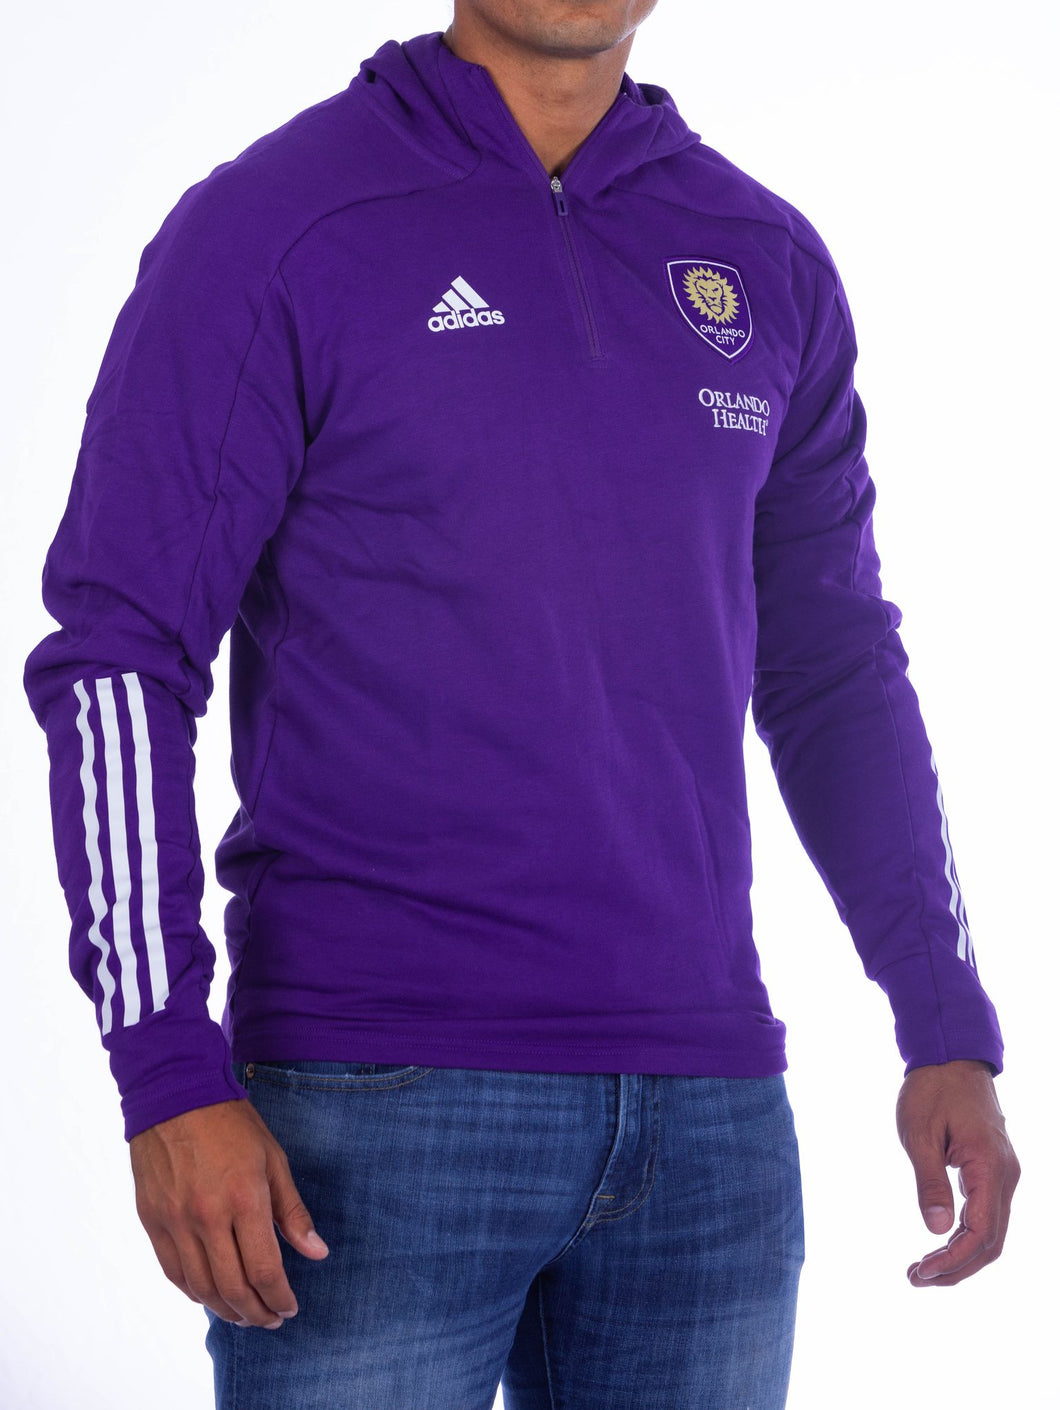 Men's Adidas Travel Jacket